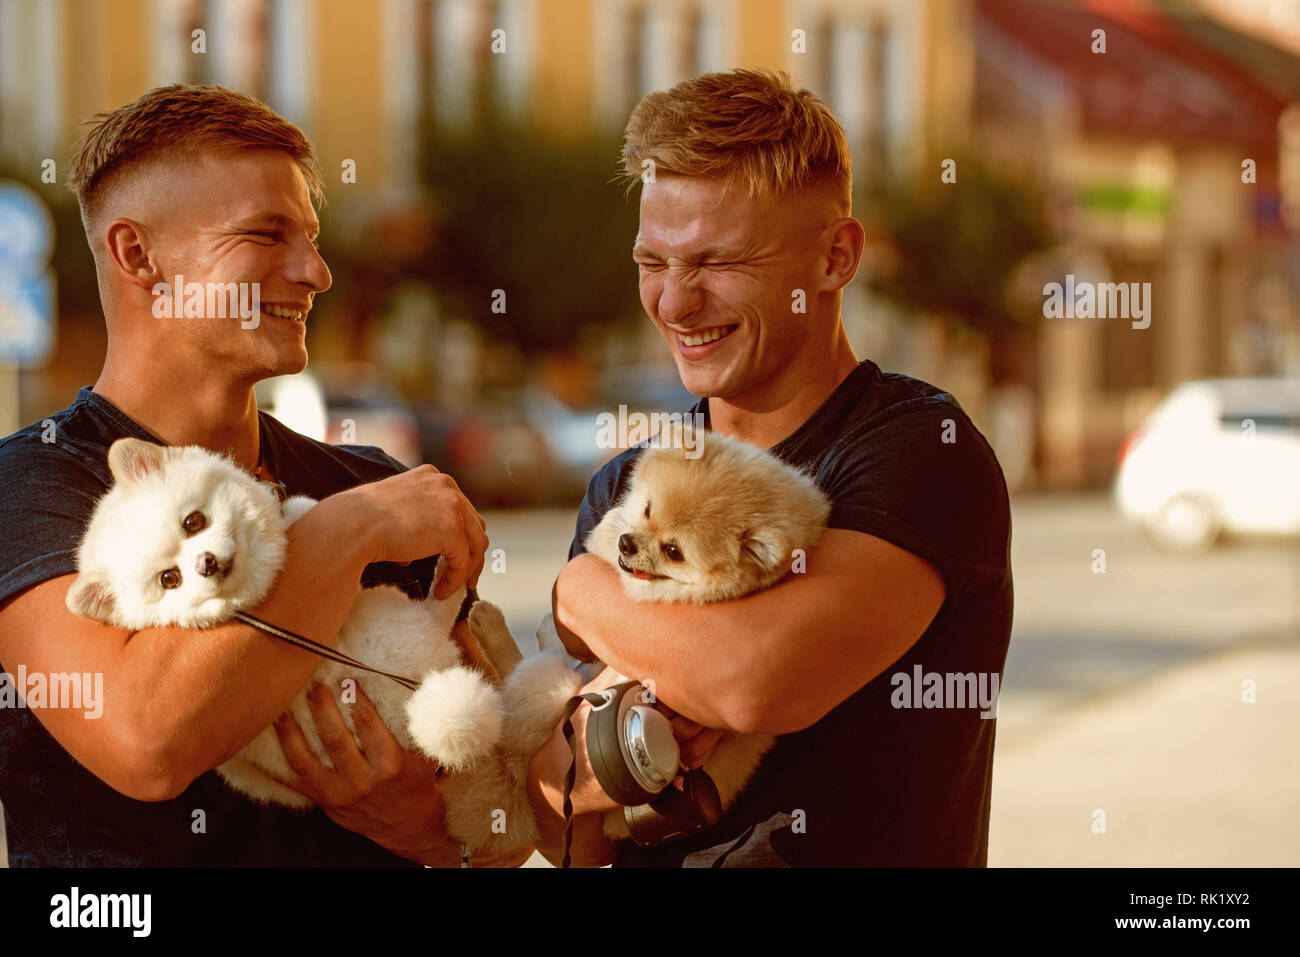 Nothing else but happiness. Happy family on walk. Muscular men with dog pets. Twins men hold pedigree dogs. Happy twins with muscular look. Spitz dogs - Stock Image